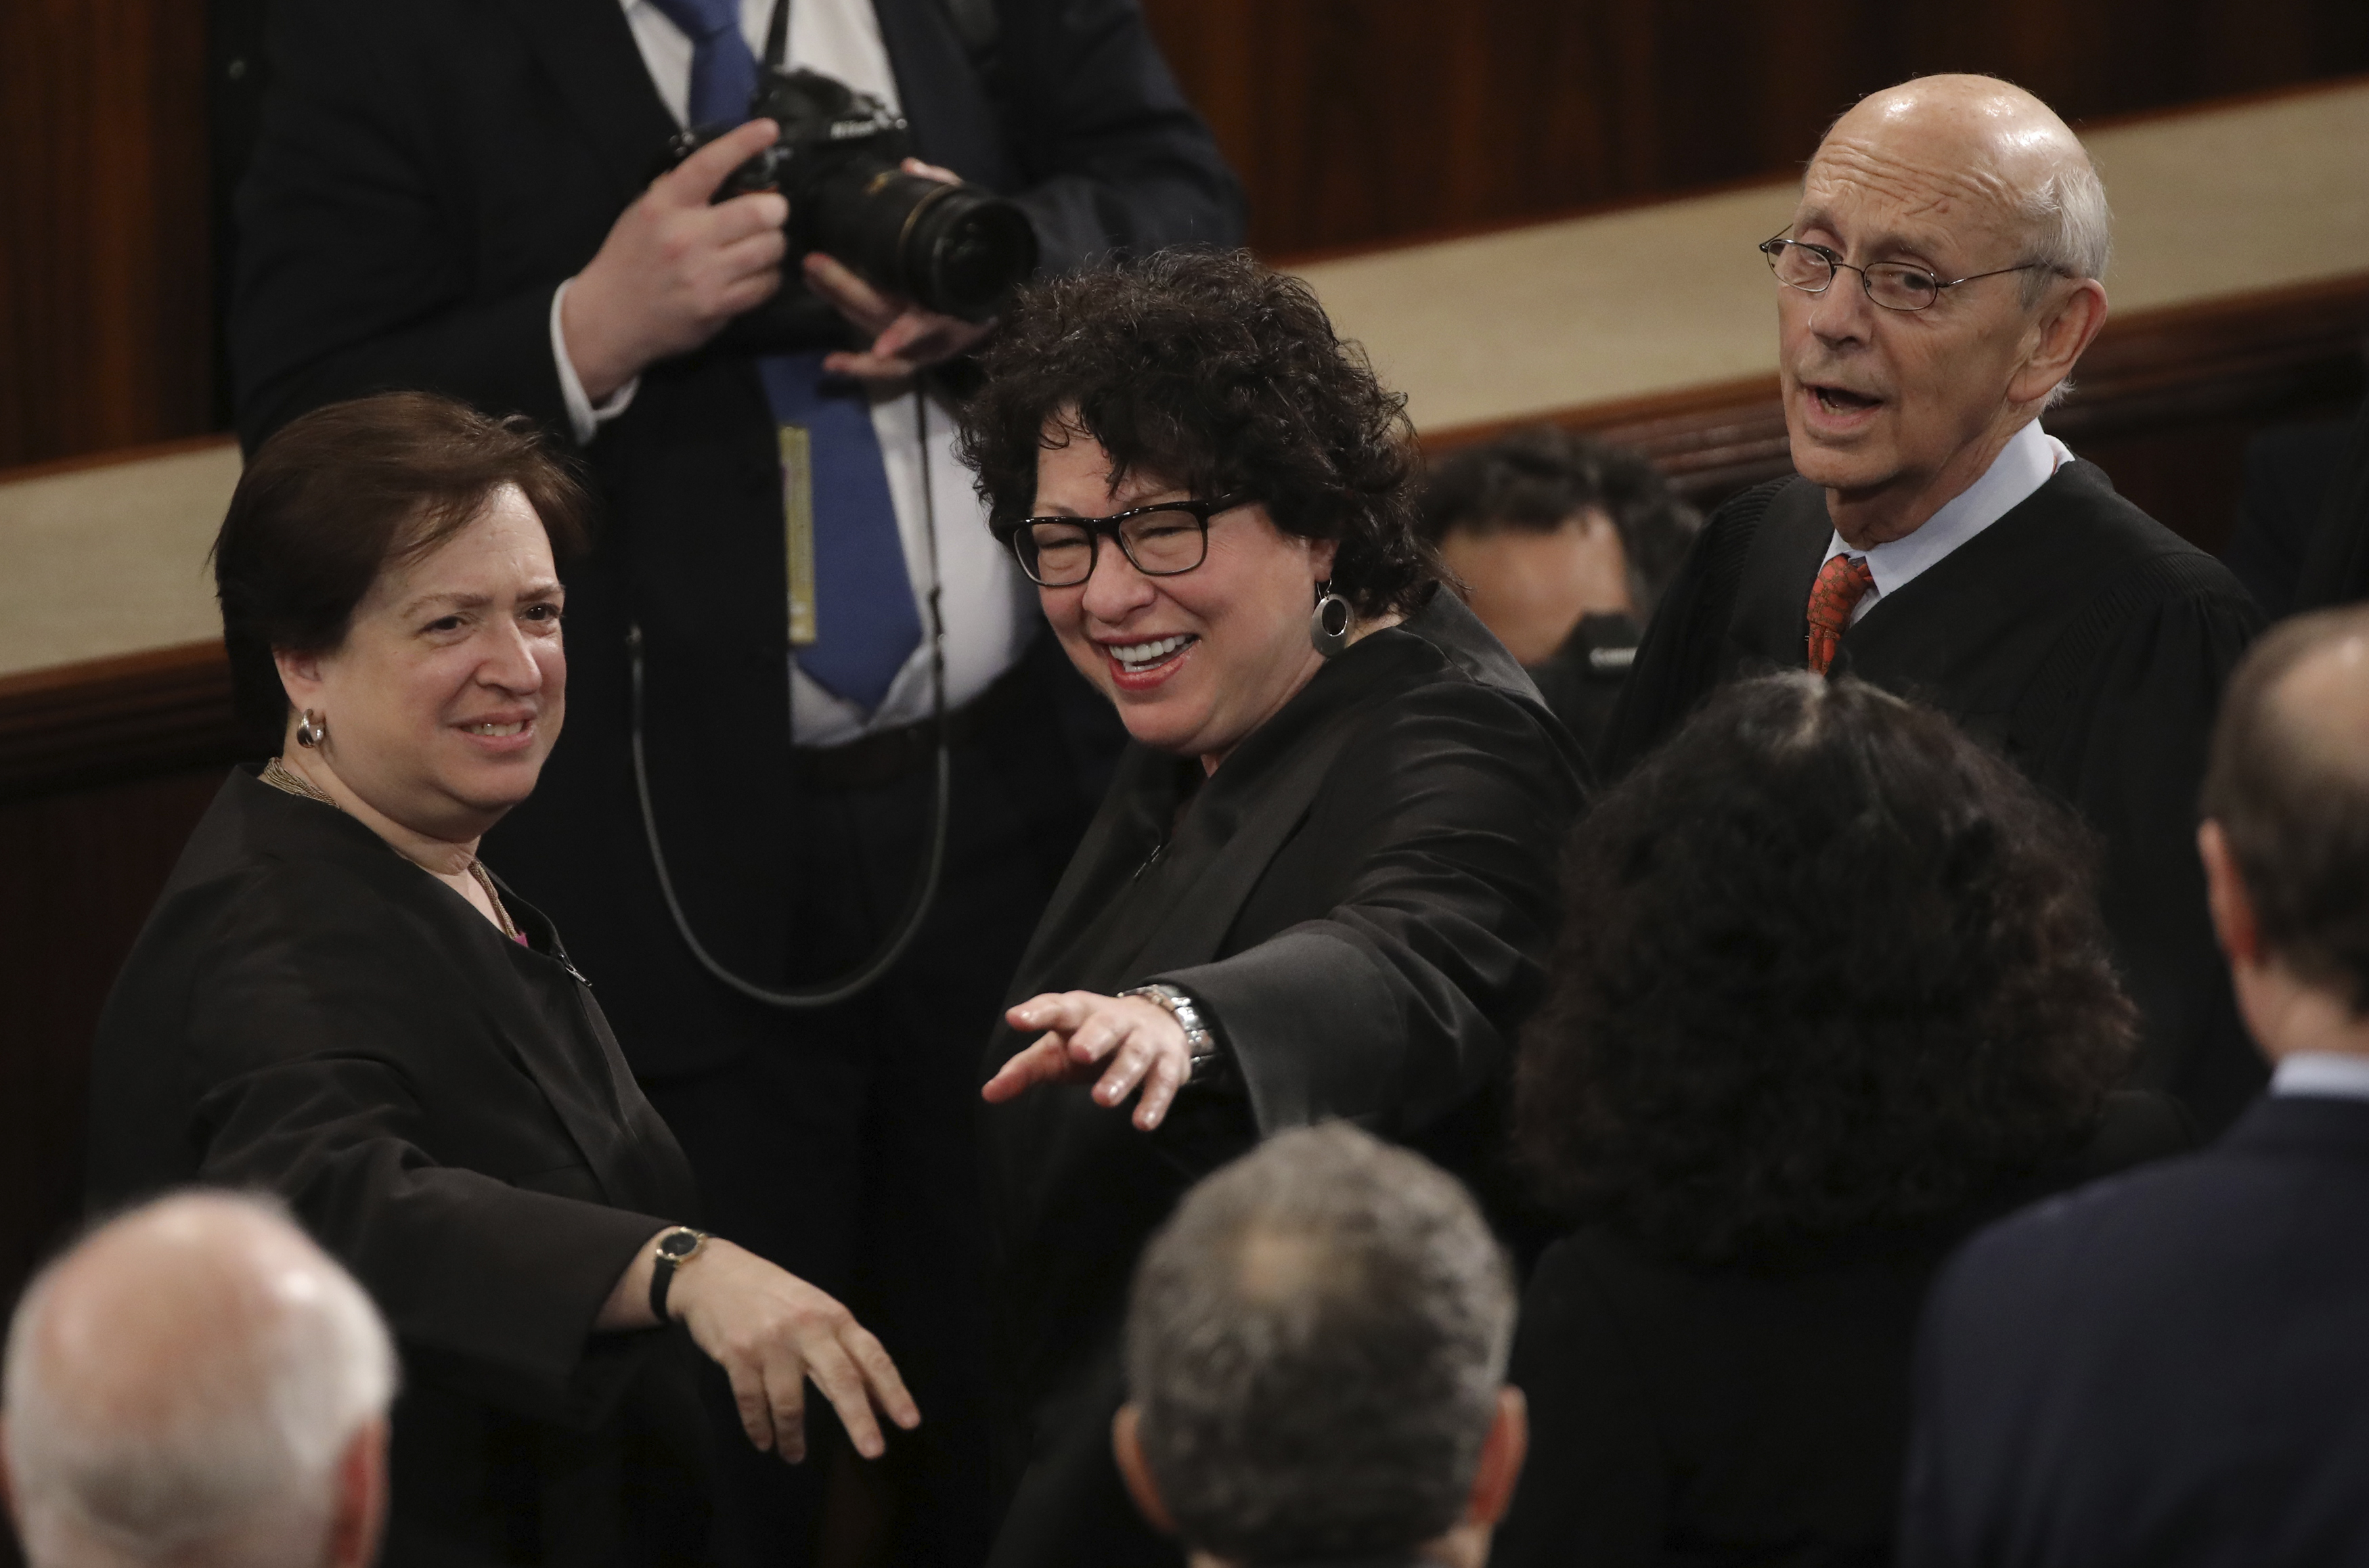 (L-R) Supreme Court Justices Elena Kagan, Sonia Sotomayor and Stephen Breyer. REUTERS/Carlos Barria